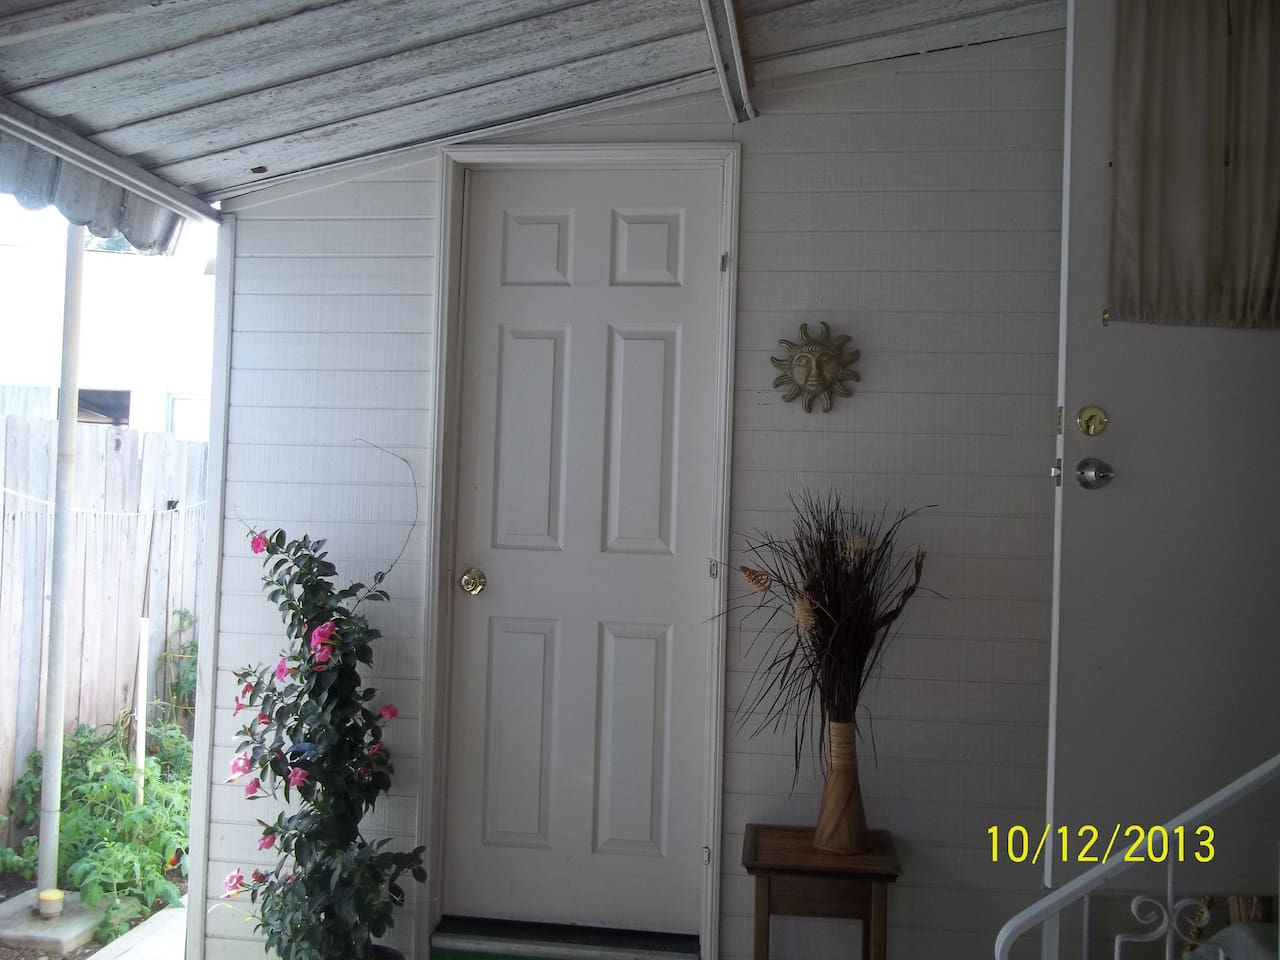 PRIVATE ENTRANCE is the door in the center of the picture.  On the right is the open door to the main house.  On the left side of the picture is a tomato garden and a sidewalk that leads to an enclosed back patio.  Picture is taken from inside the enclose